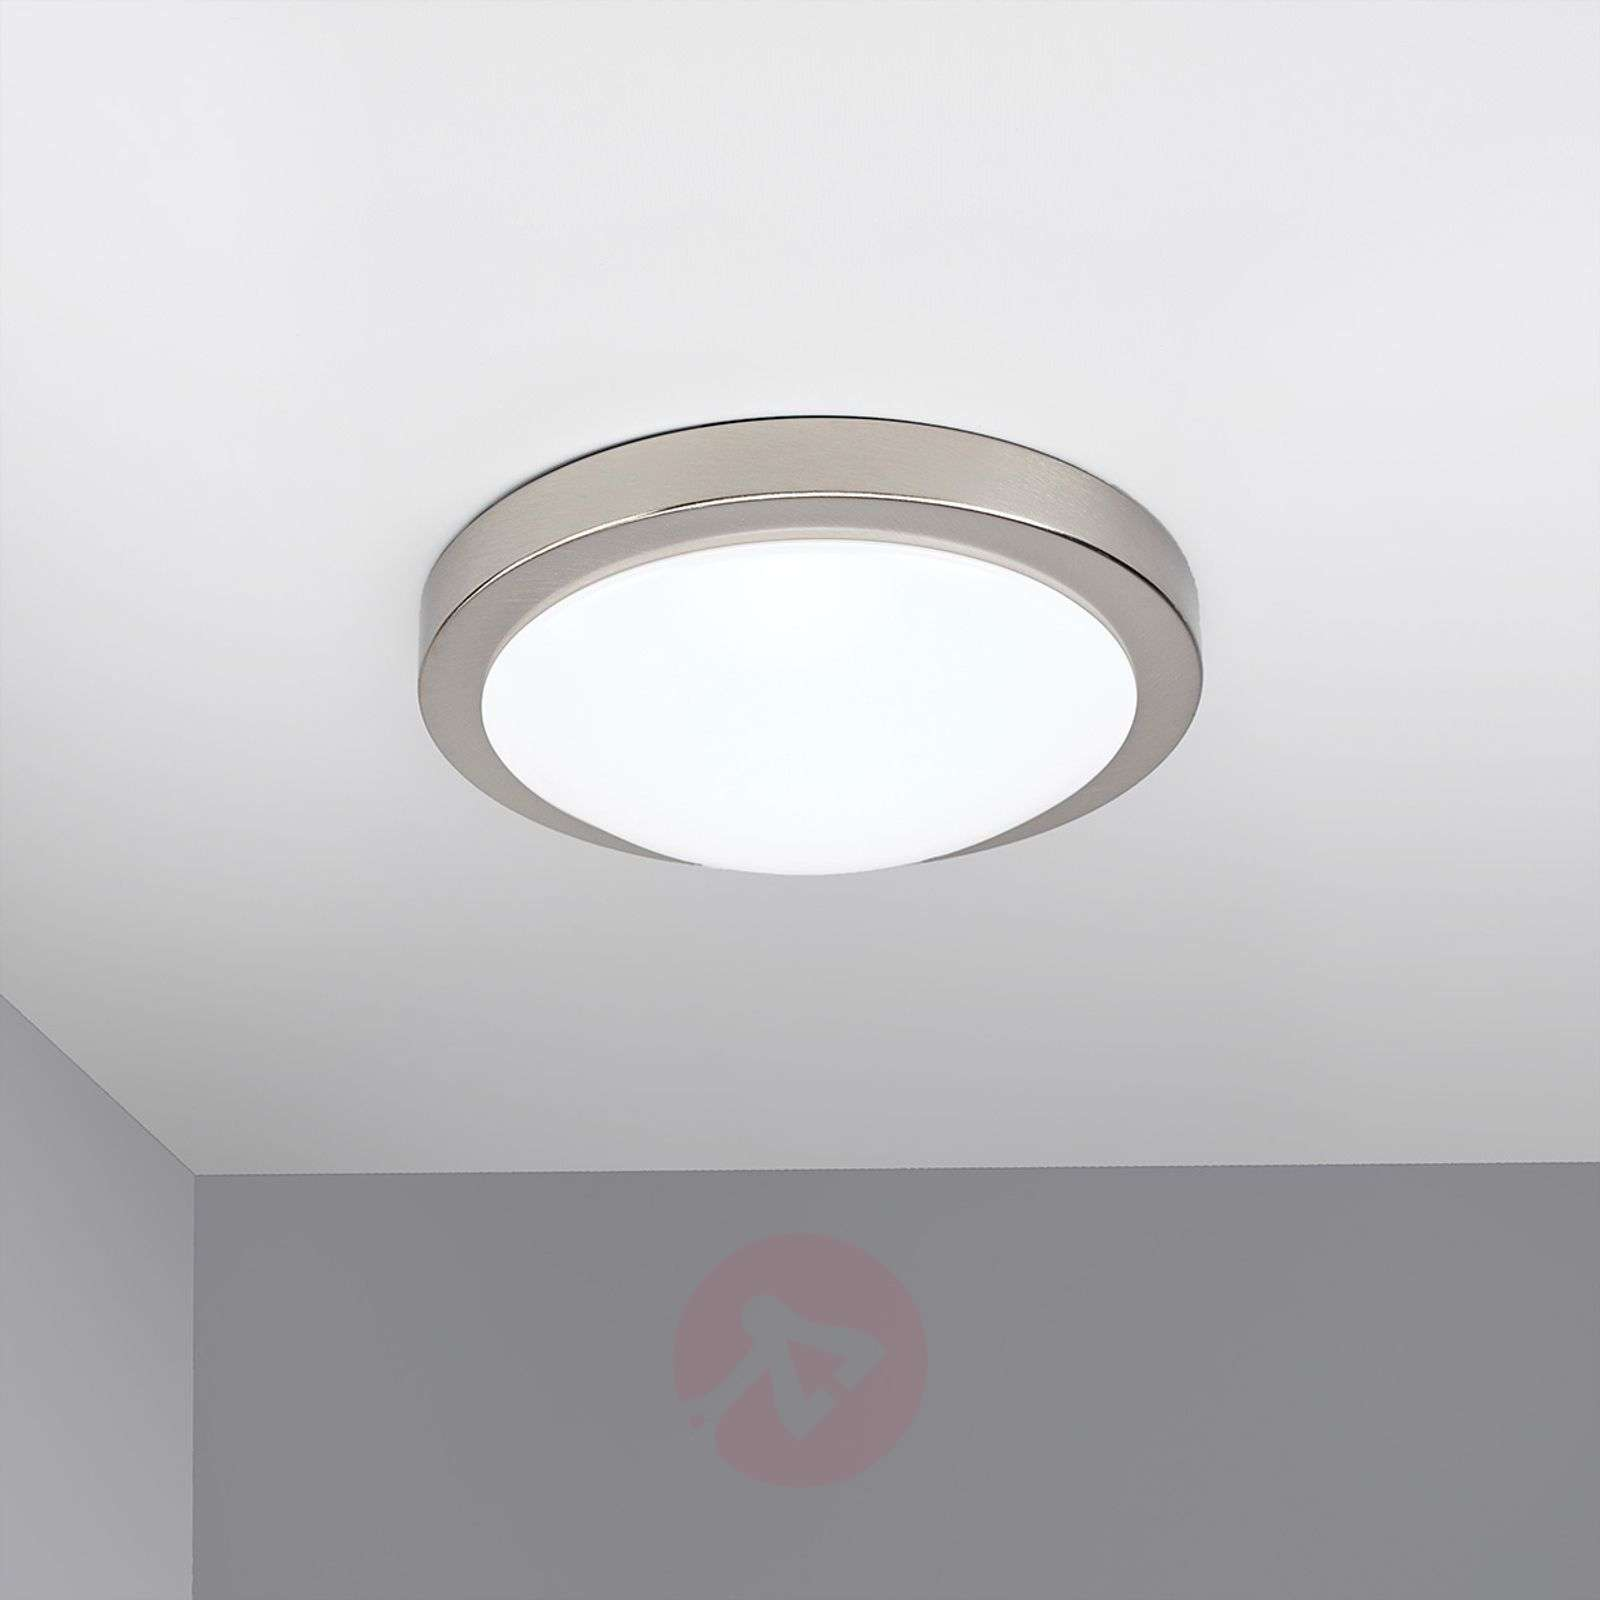 Aras plafonnier salle de bain led nickel mat for Plafonnier salle de bain led